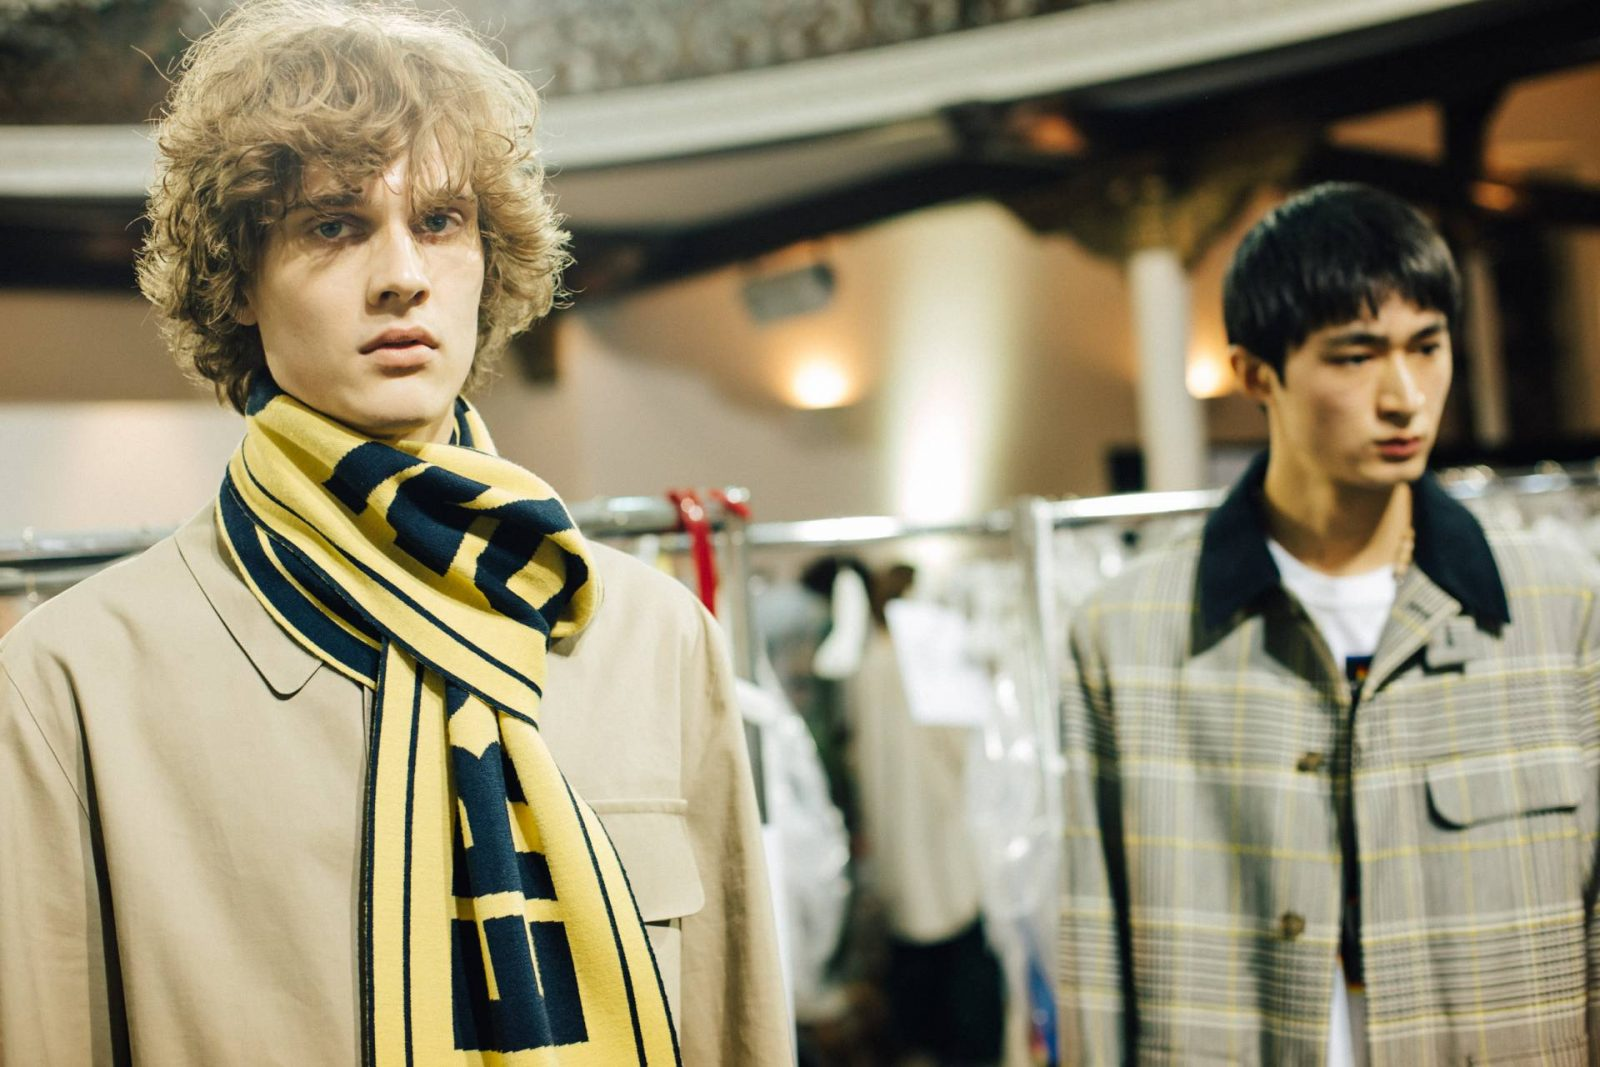 A Stella Collection – The Launch of Stella McCartney Menswear